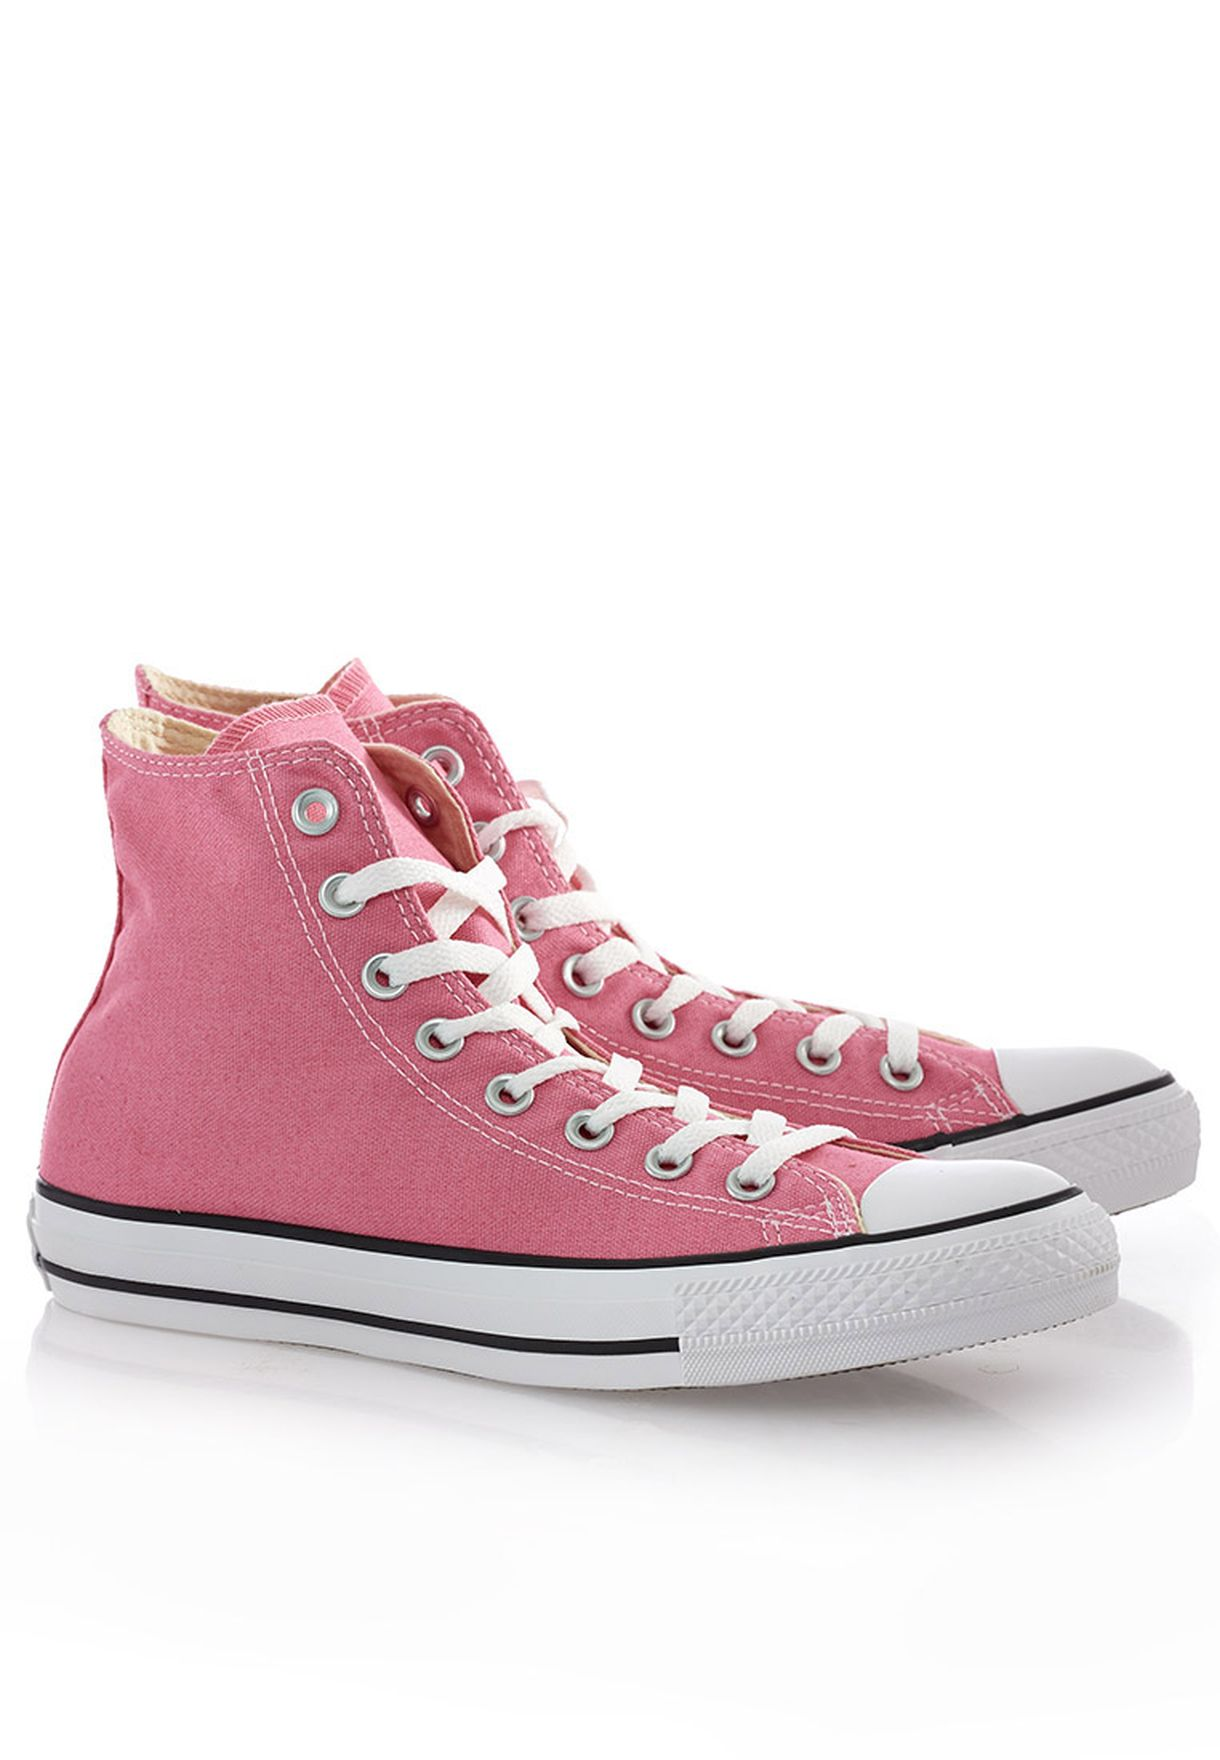 0bb04504a70 Shop Converse pink Chuck Taylor AS Core HI Sneakers for Women in Bahrain -  CO049SH55UDS